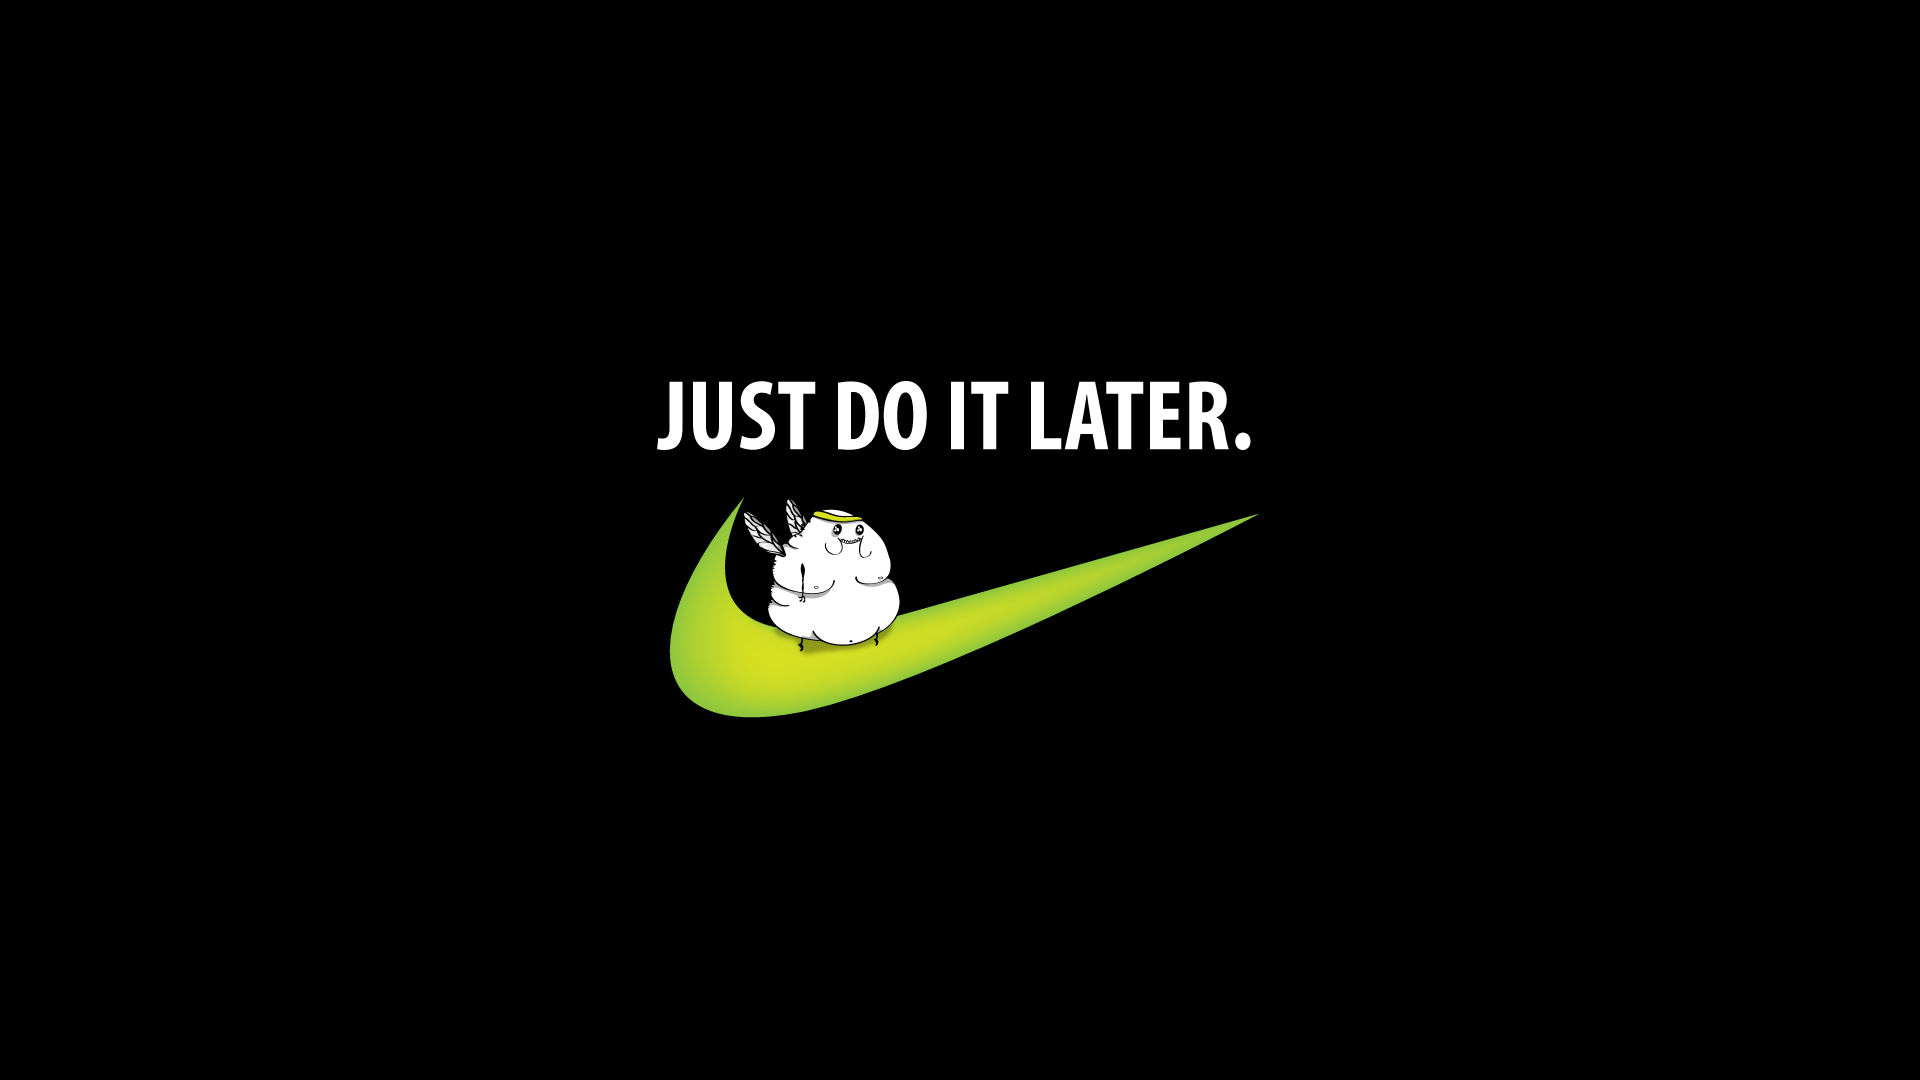 Nike Motivational Quotes Wallpaper Just do it later wallpaper 1920x1080